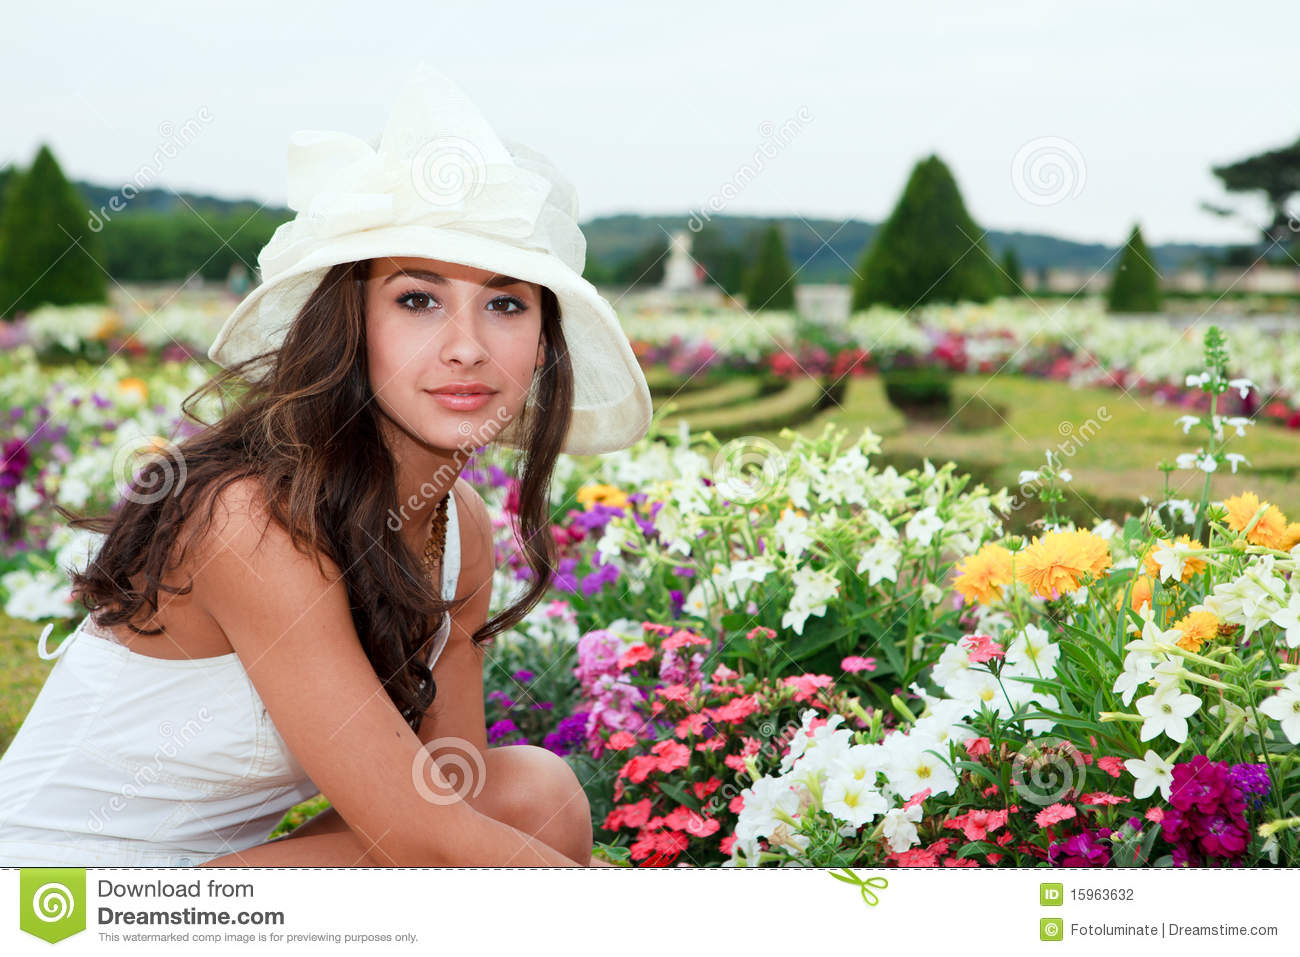 versailles single girls Meet versailles singles online & chat in the forums dhu is a 100% free dating site to find personals & casual encounters in versailles.